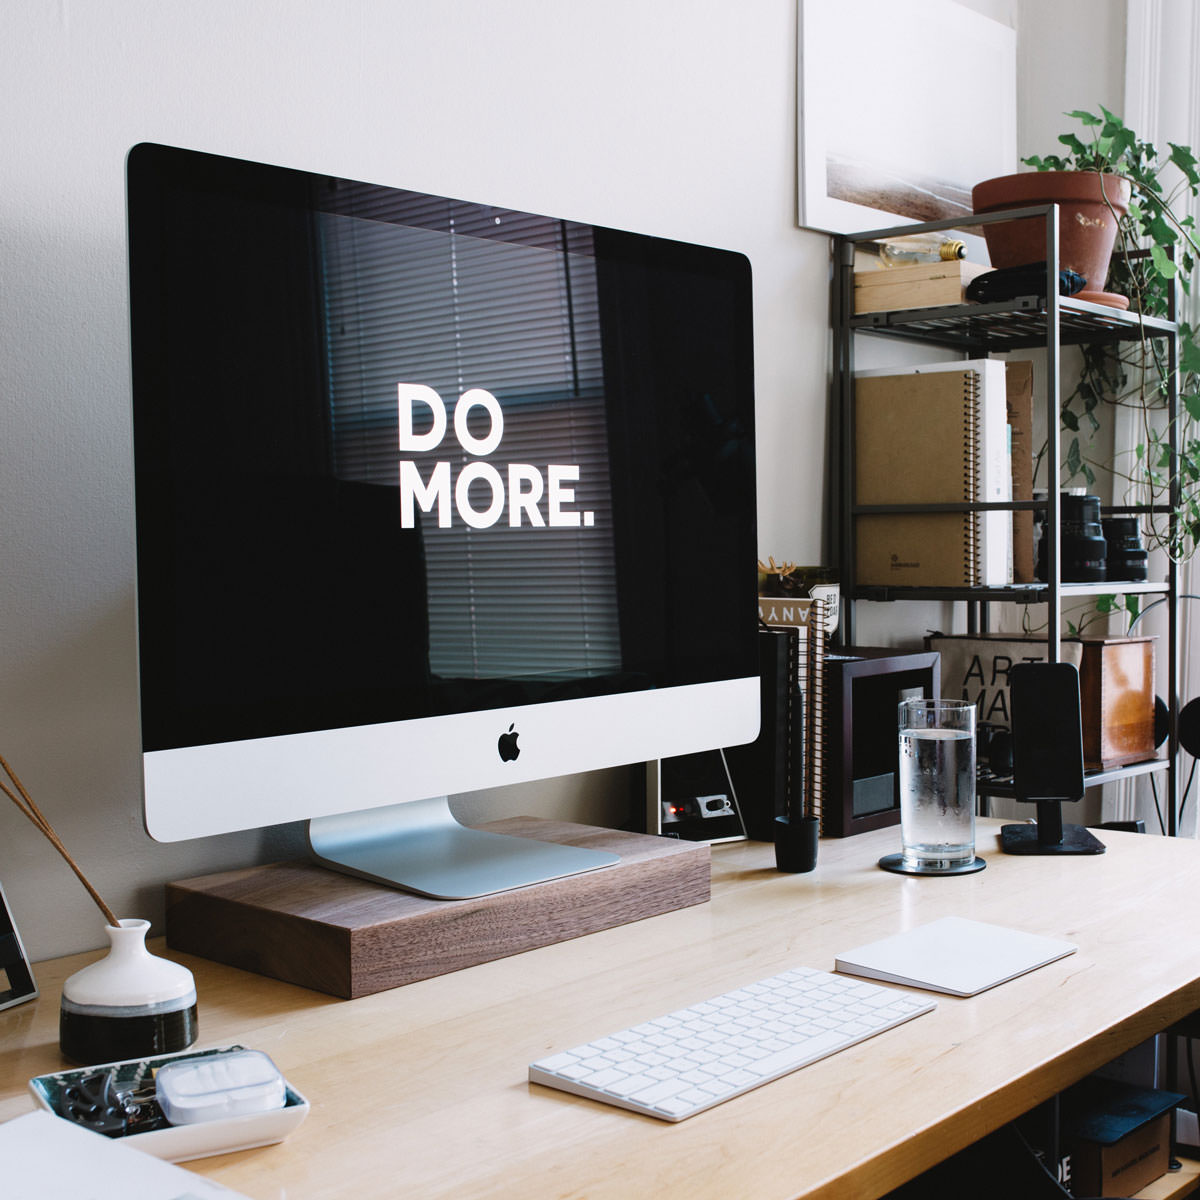 Computer on desk with Do More message on screen